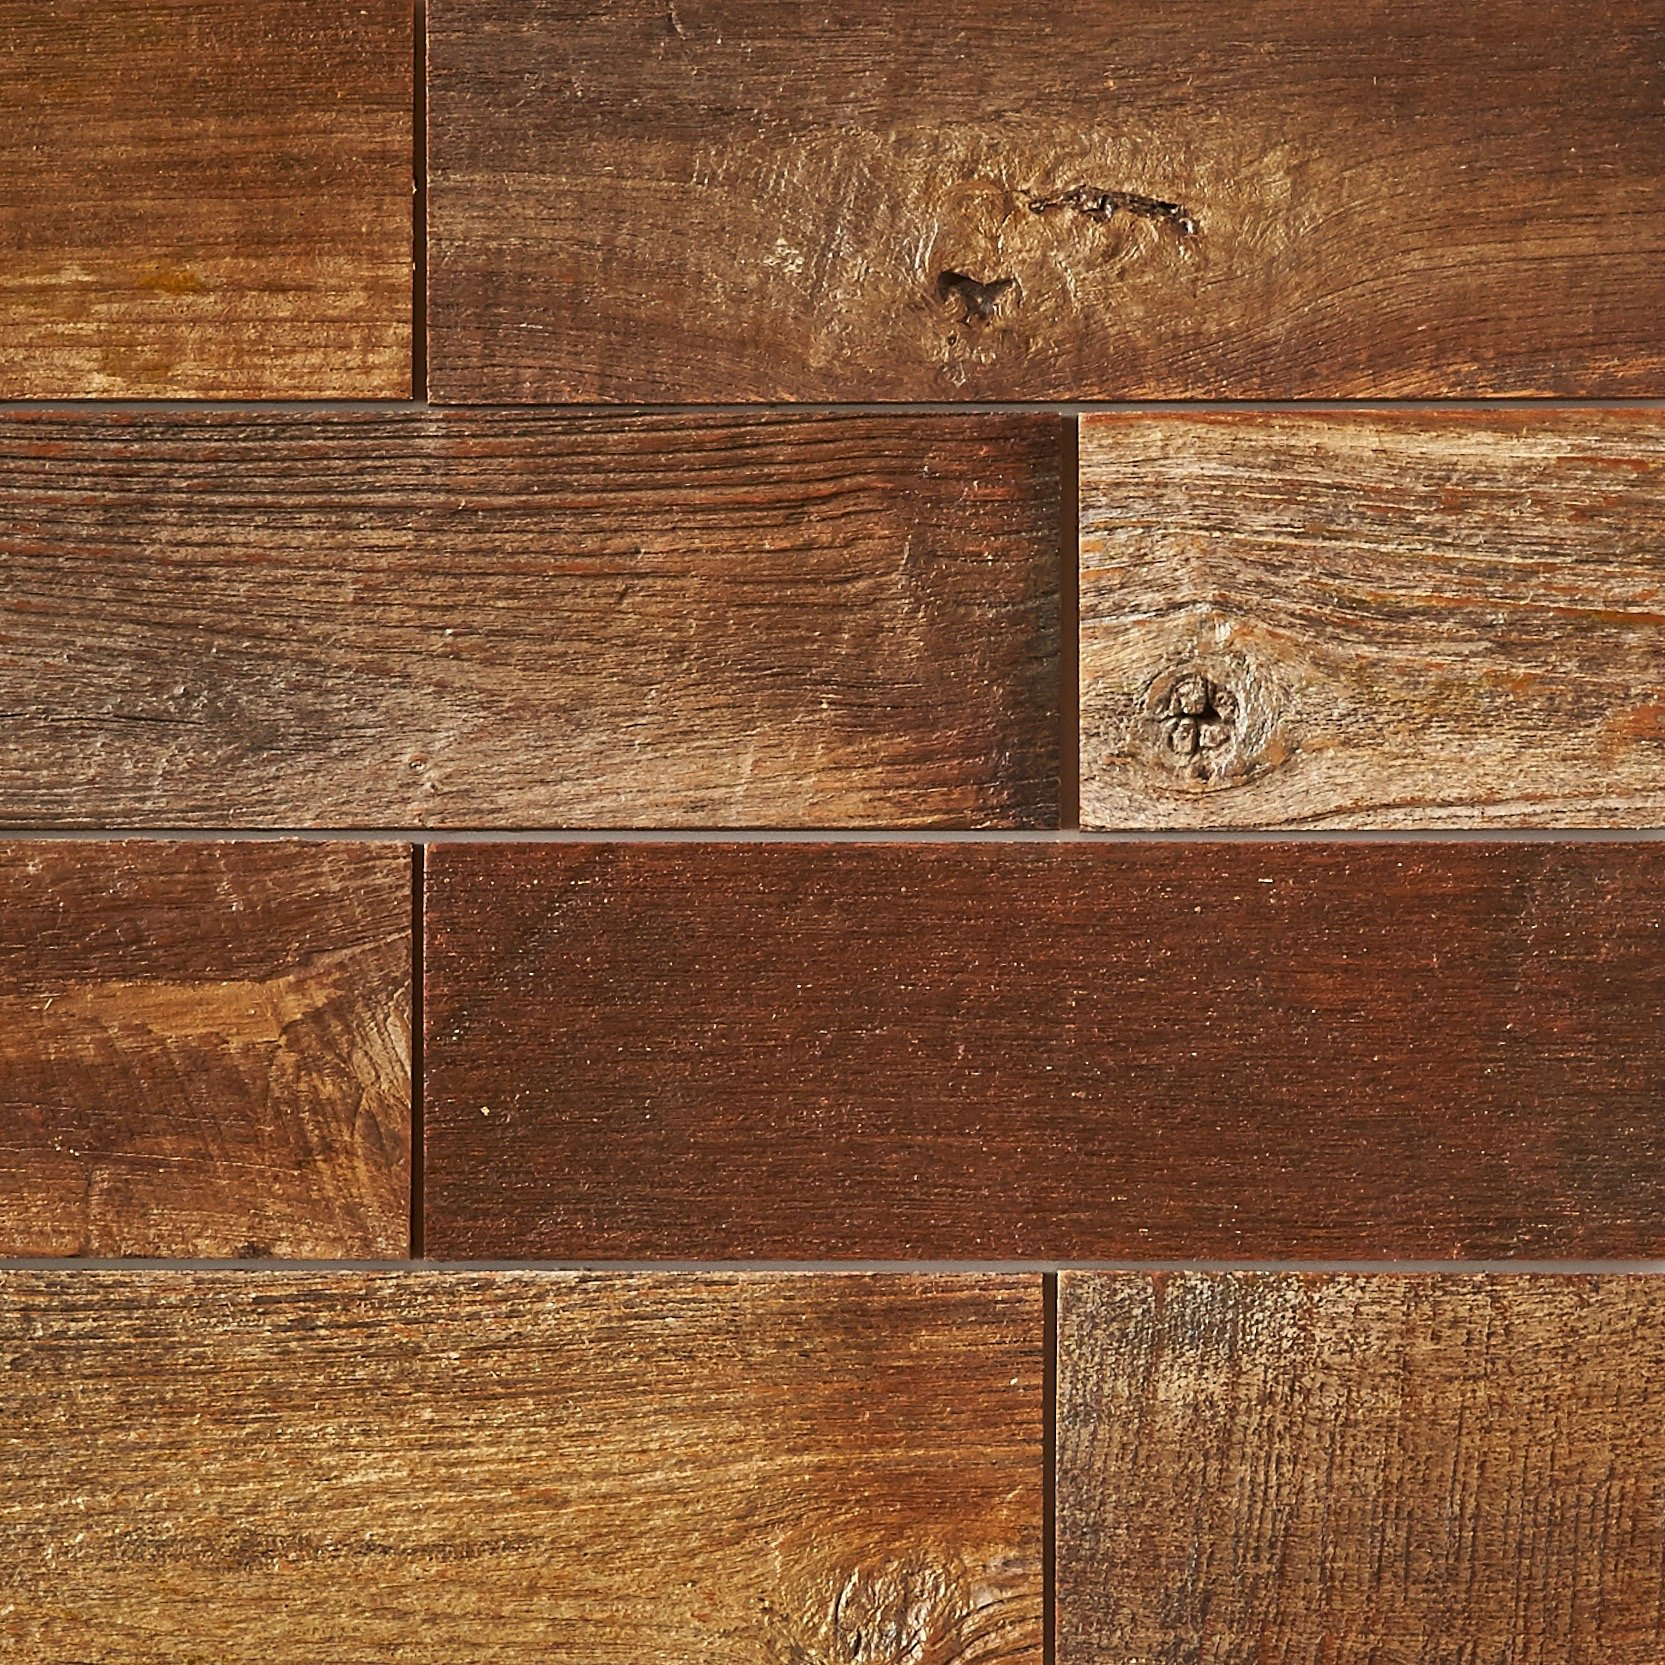 patina matte finish 11 - Teak Tile - Subway